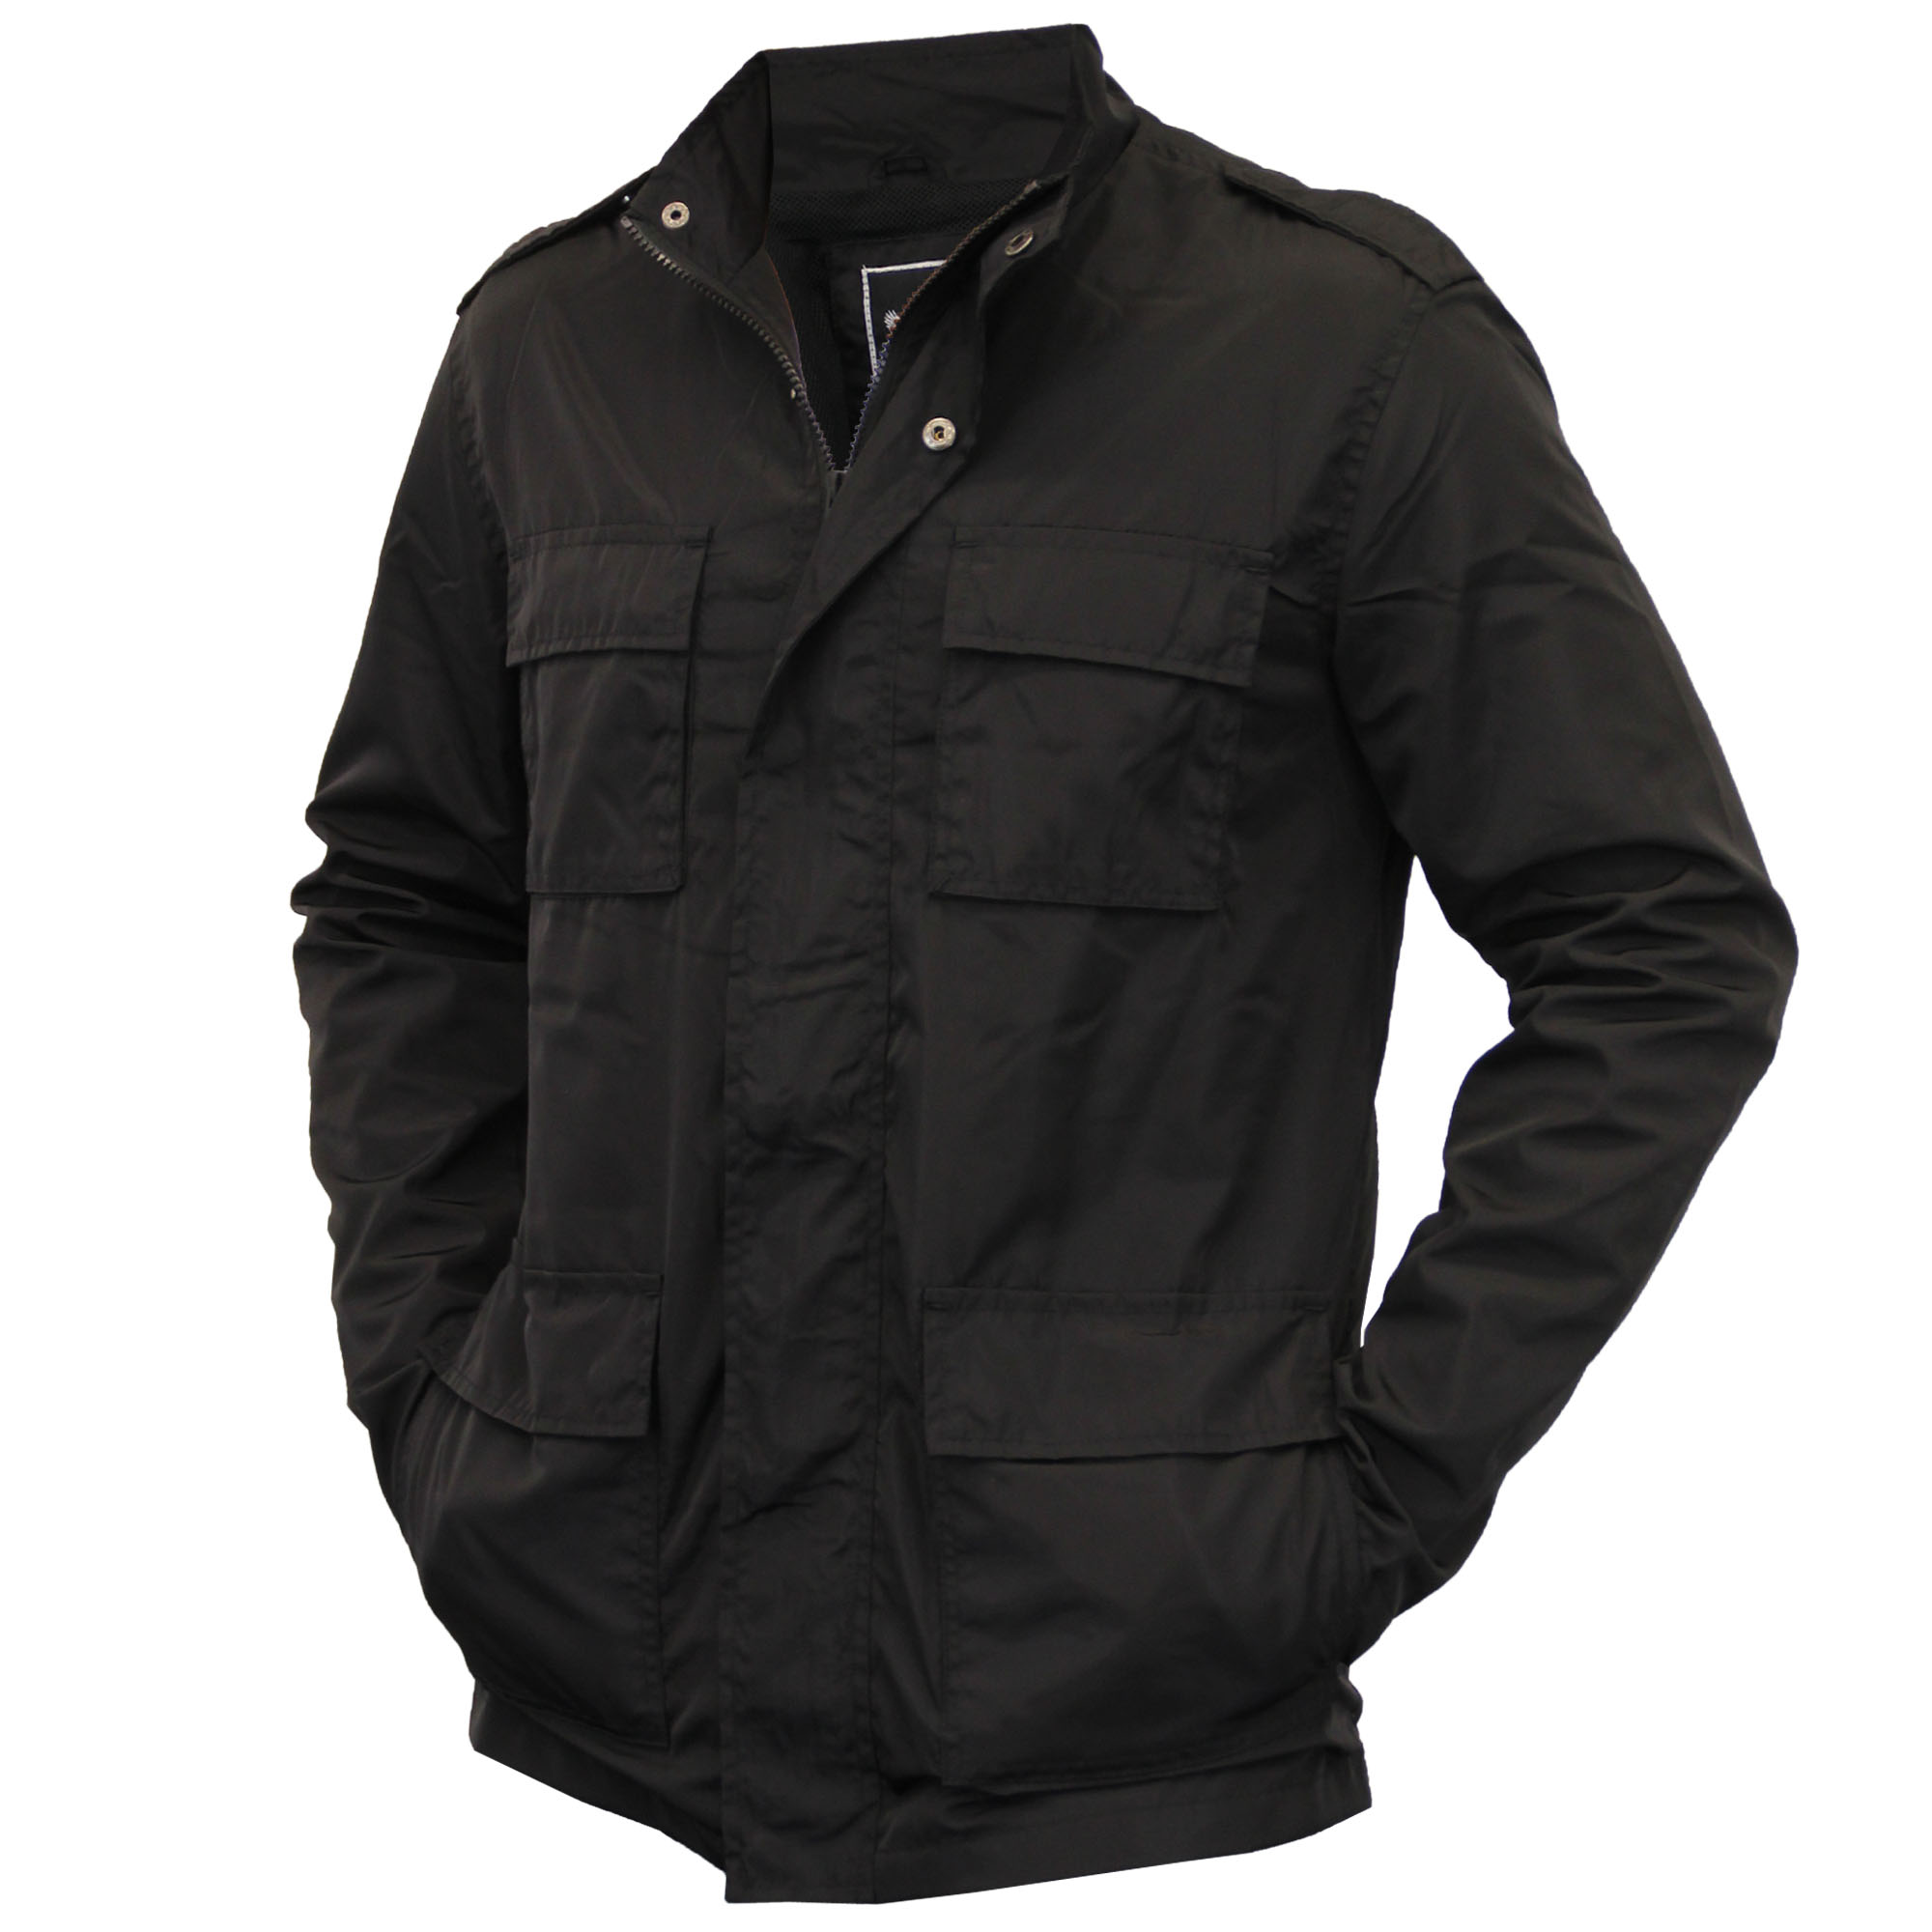 Mens Military Jacket. Chill winds, daytime breezes, and low temperatures are no match for the extra layer of protection provided by a stylish tennesseemyblogw0.cfble in a variety of styles and colors, a men's military jacket is a must-have addition to any casual wardrobe.